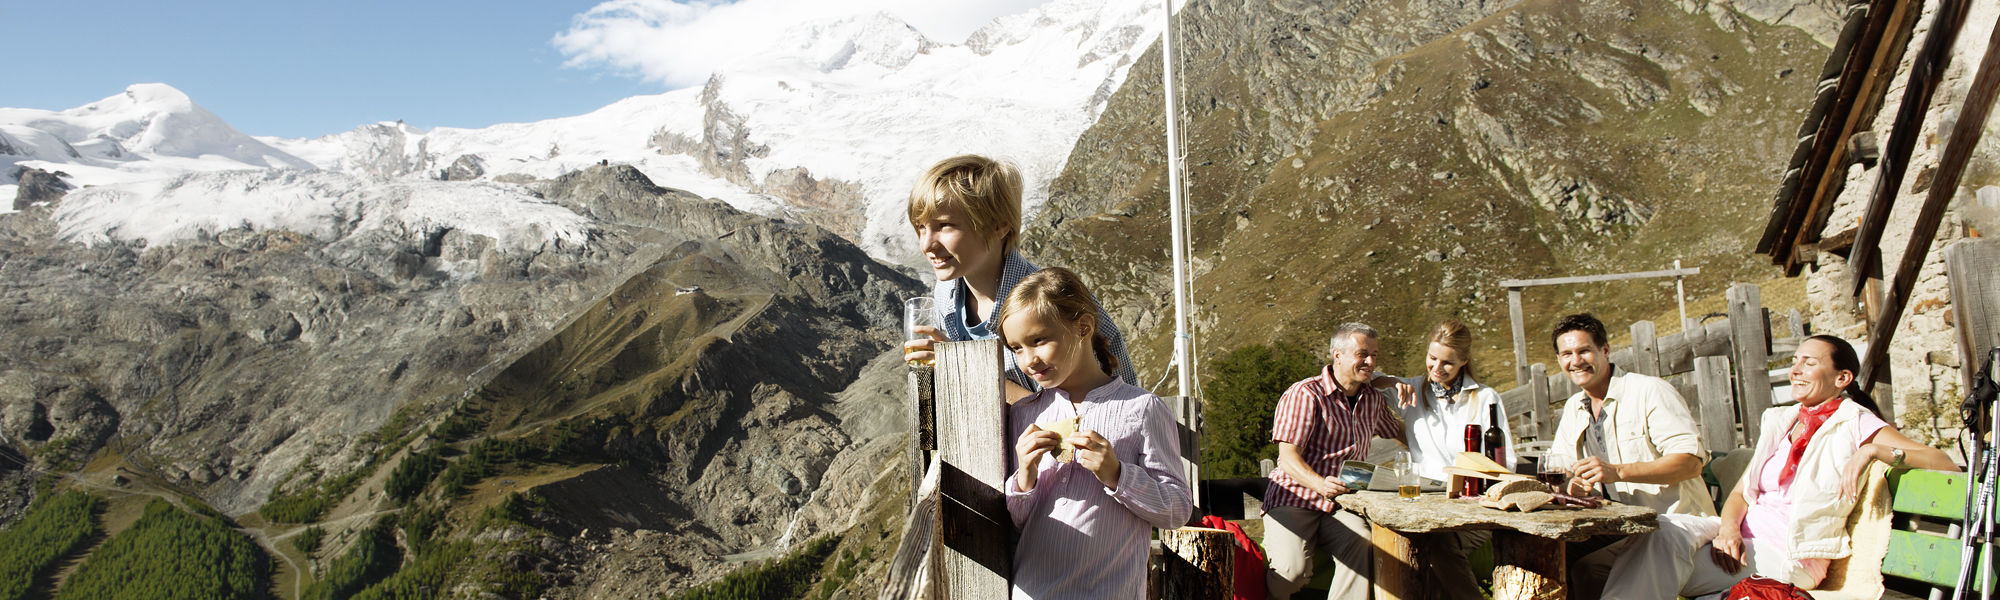 Family vacation in the Free Republic of Holidays Saas-Fee